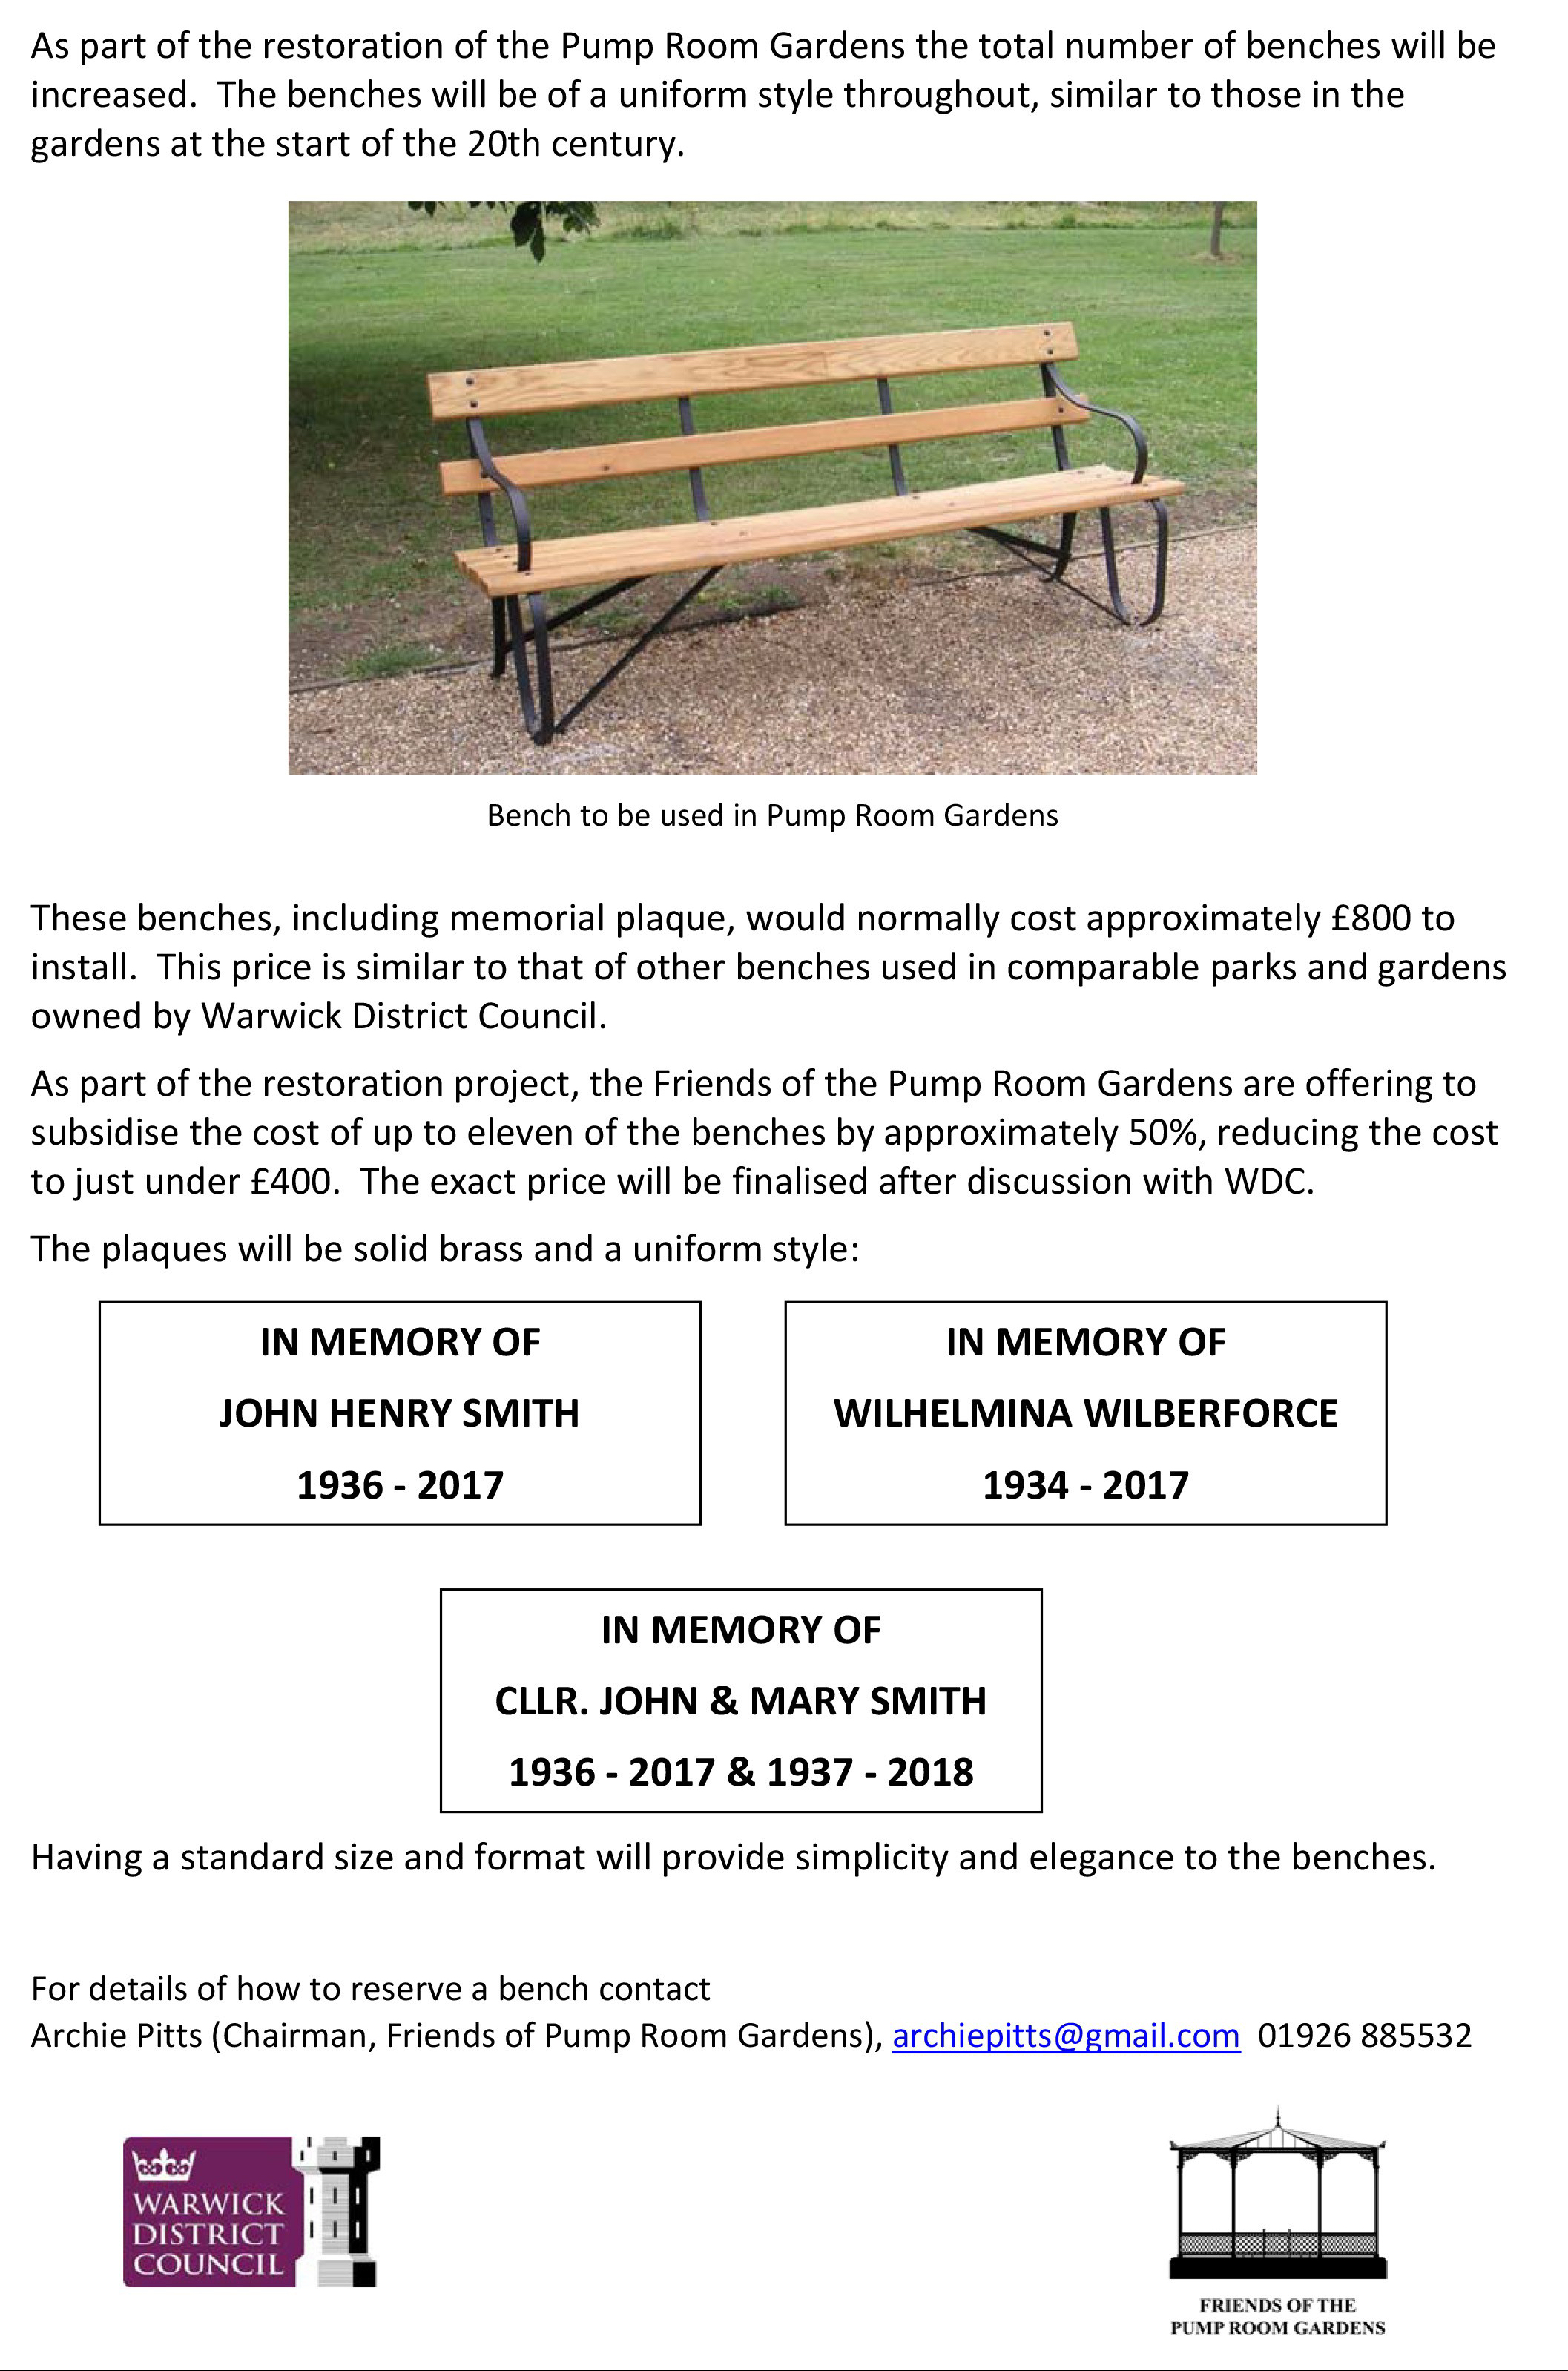 Microsoft Word - Memorial benches in PRG.doc